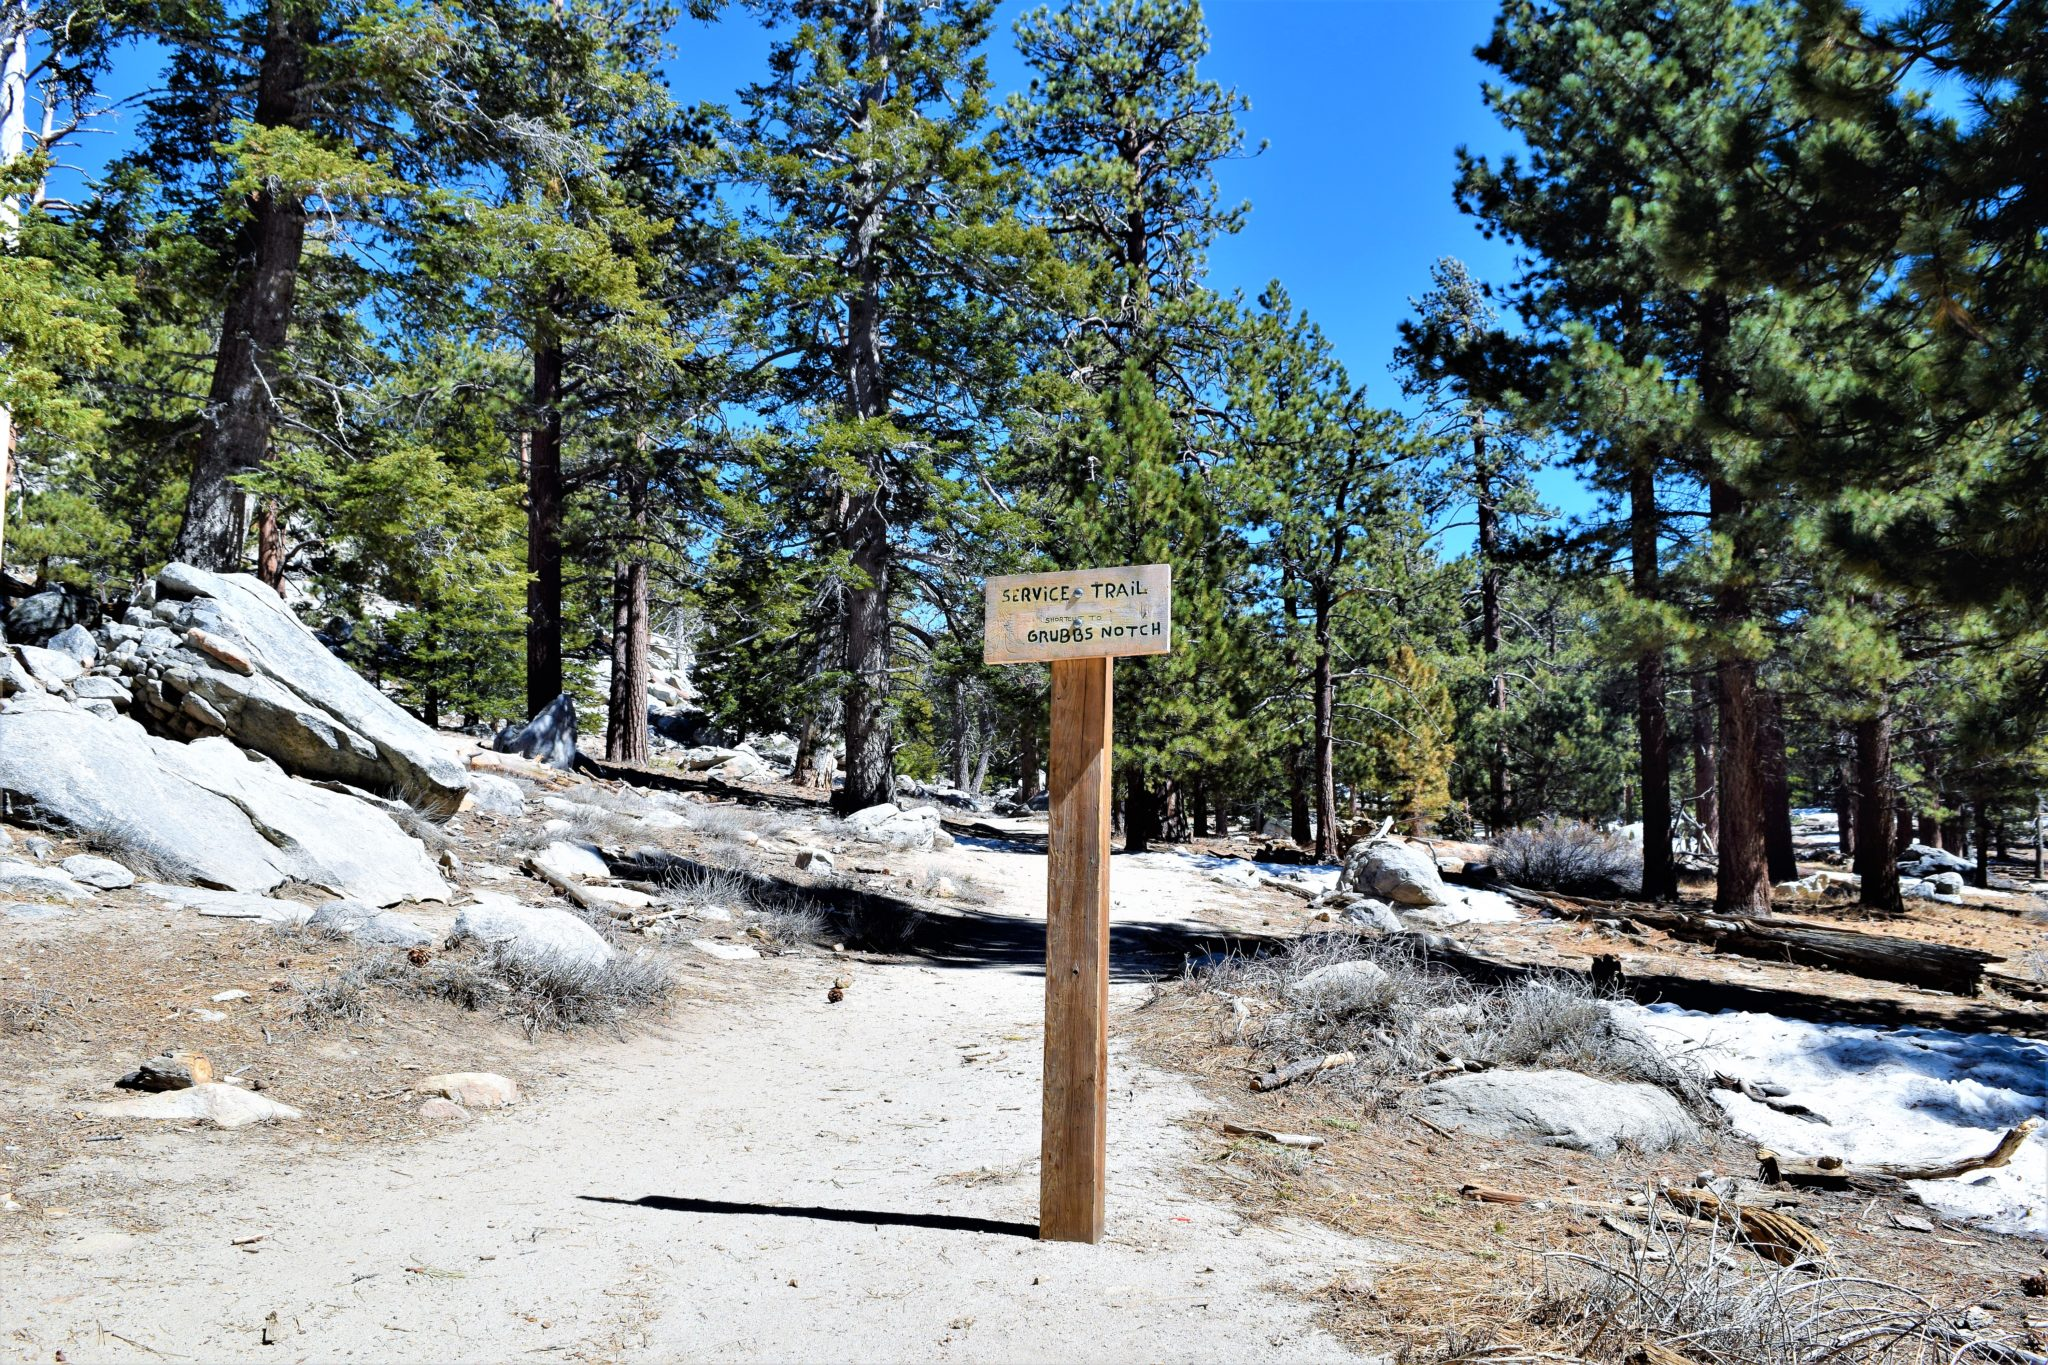 Service trail, San Jacinto State Park, Palm Springs, California